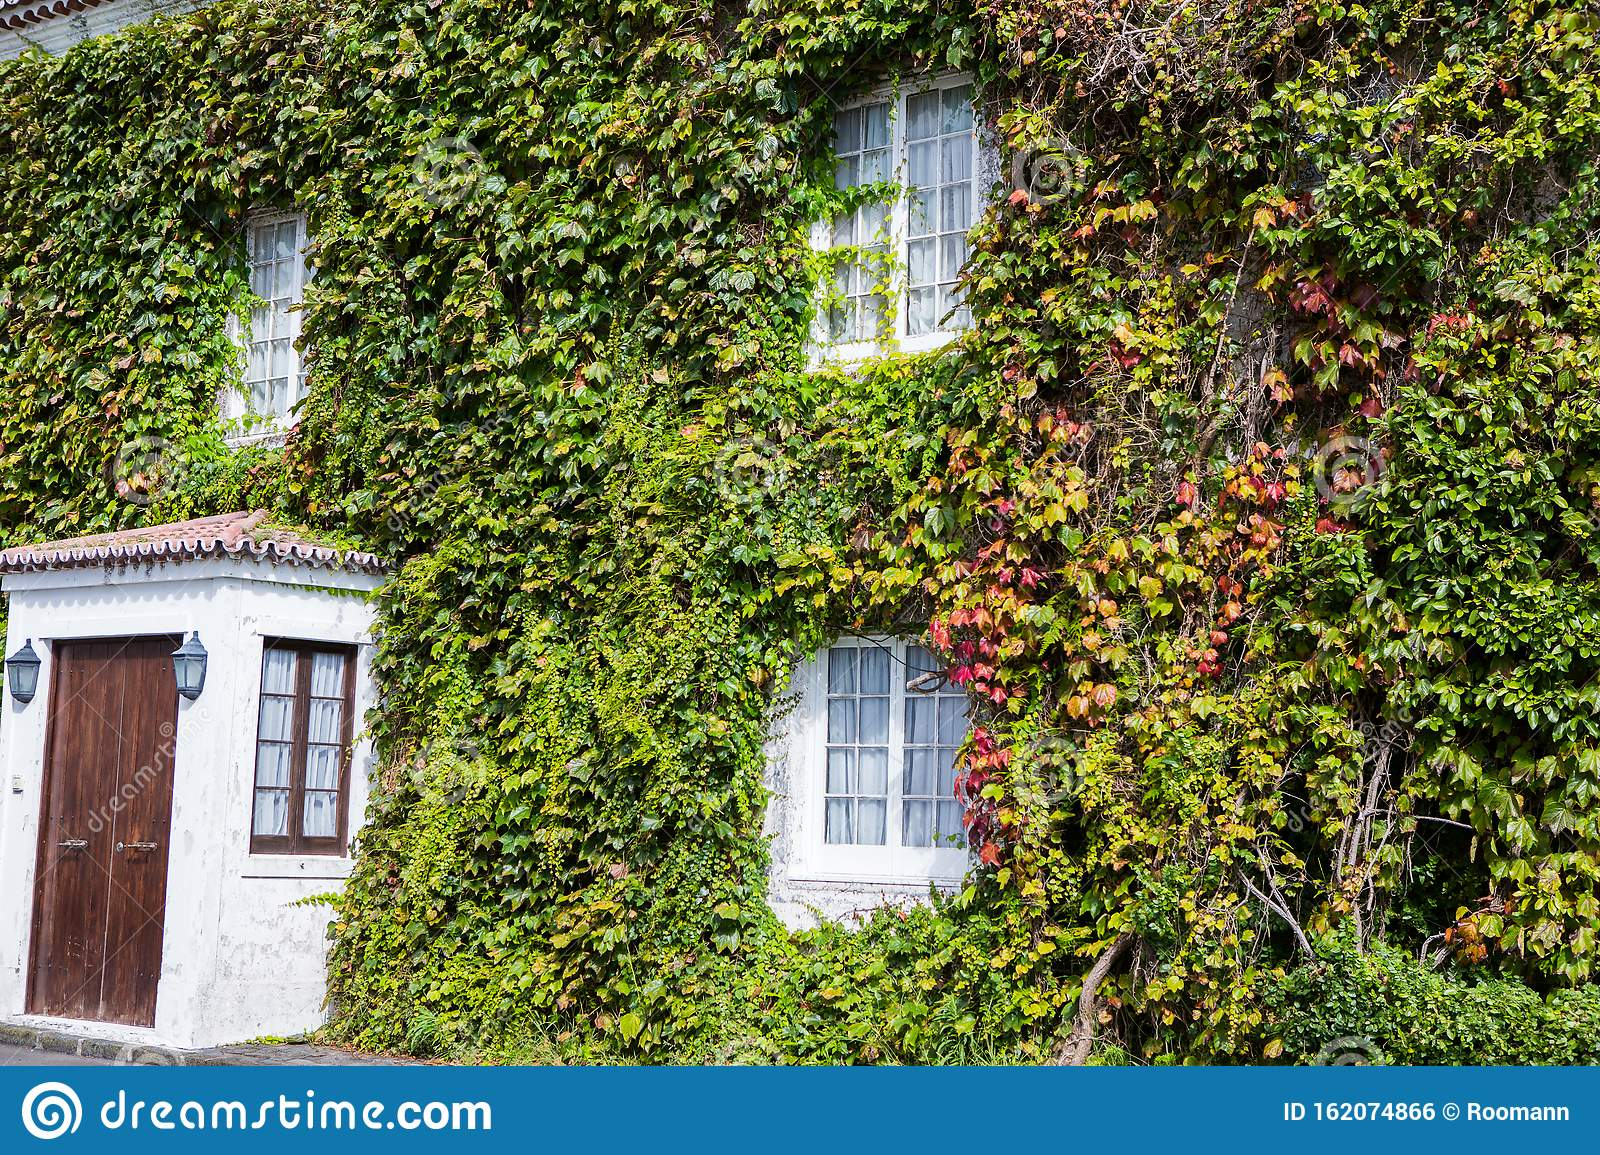 Green Wall In A Sustainable Building With Vertical Garden In The